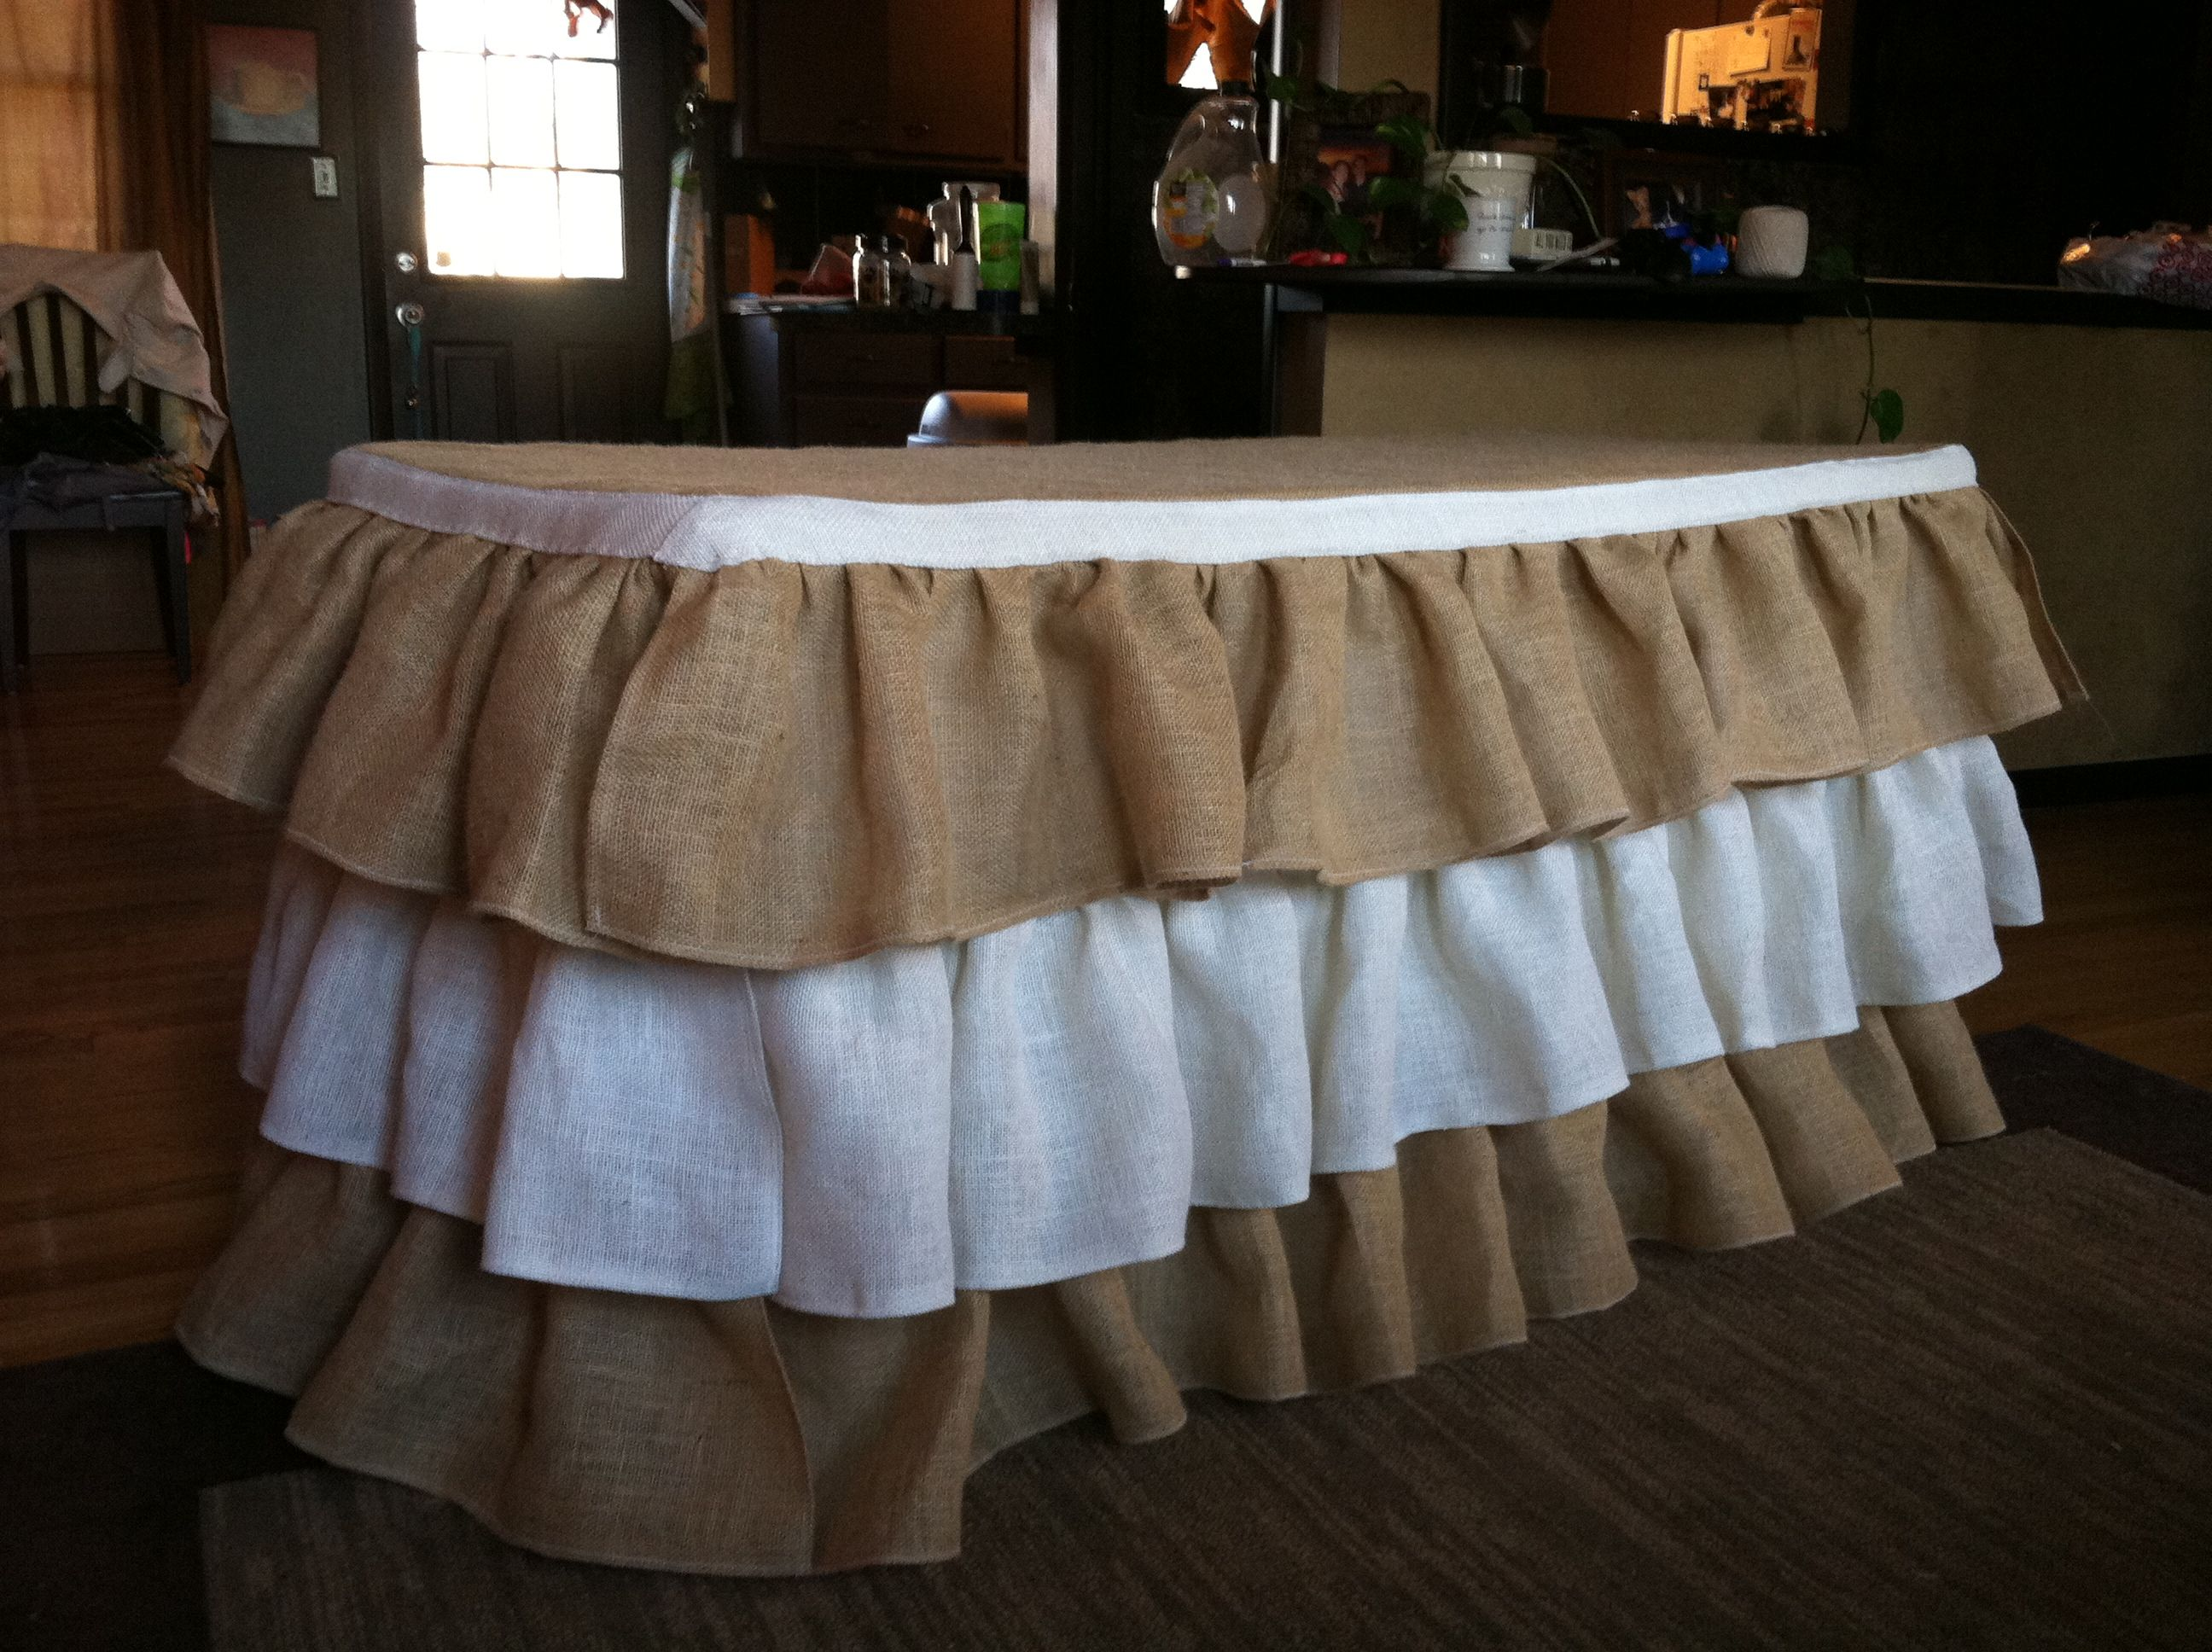 Burlap Ruffle Table Cloth With White For A Neutral Themed Baby Shower Made